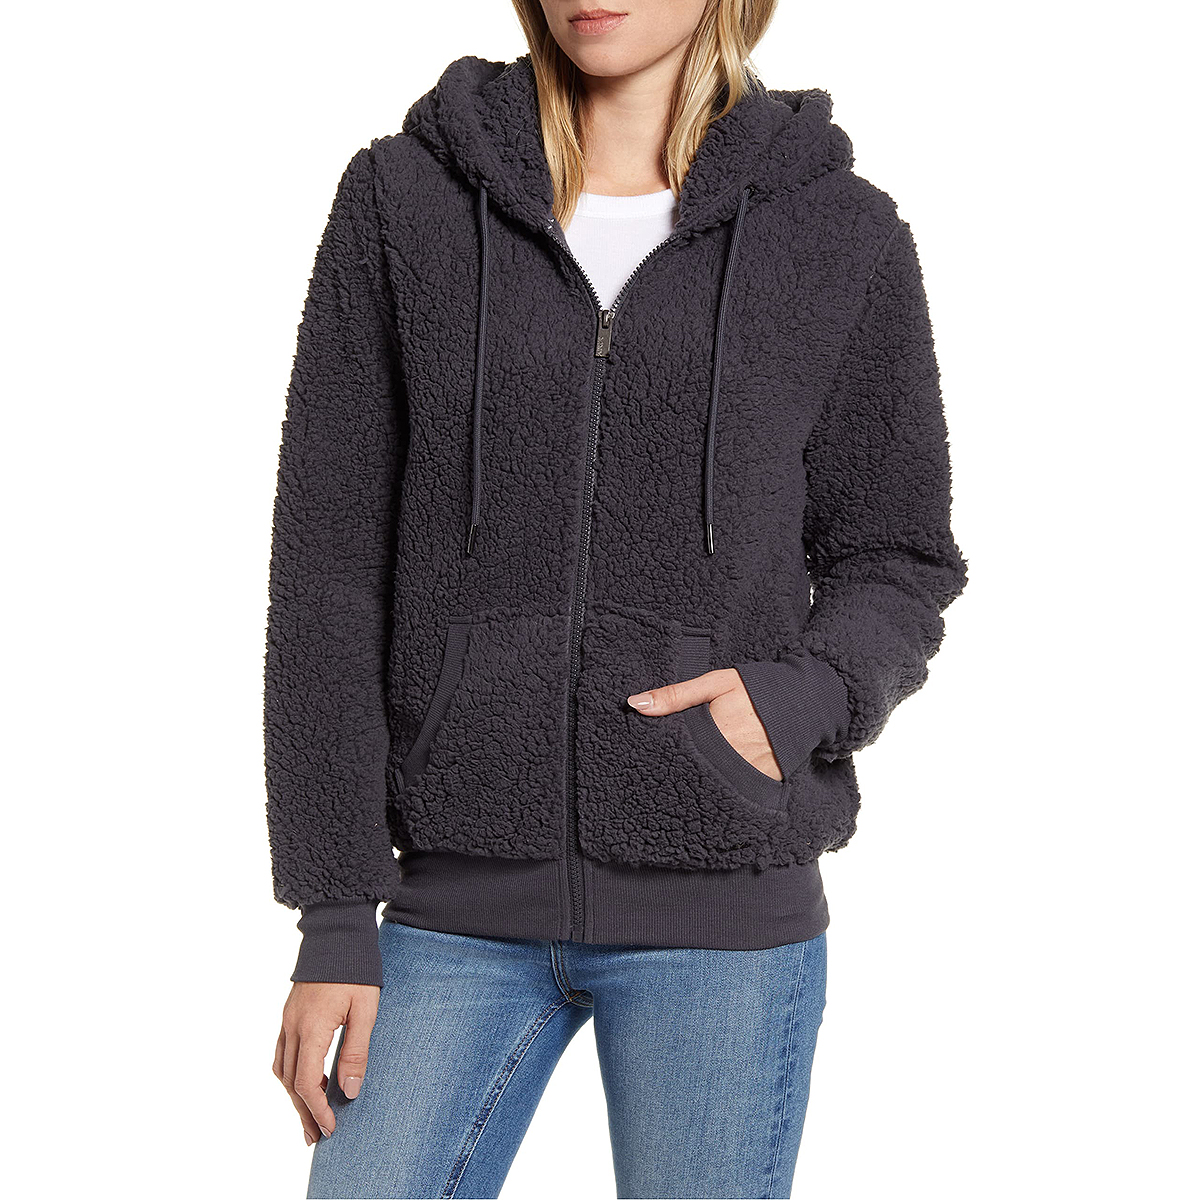 This Fleece Jacket Is on Sale and Cozier Than You Could Ever Imagine